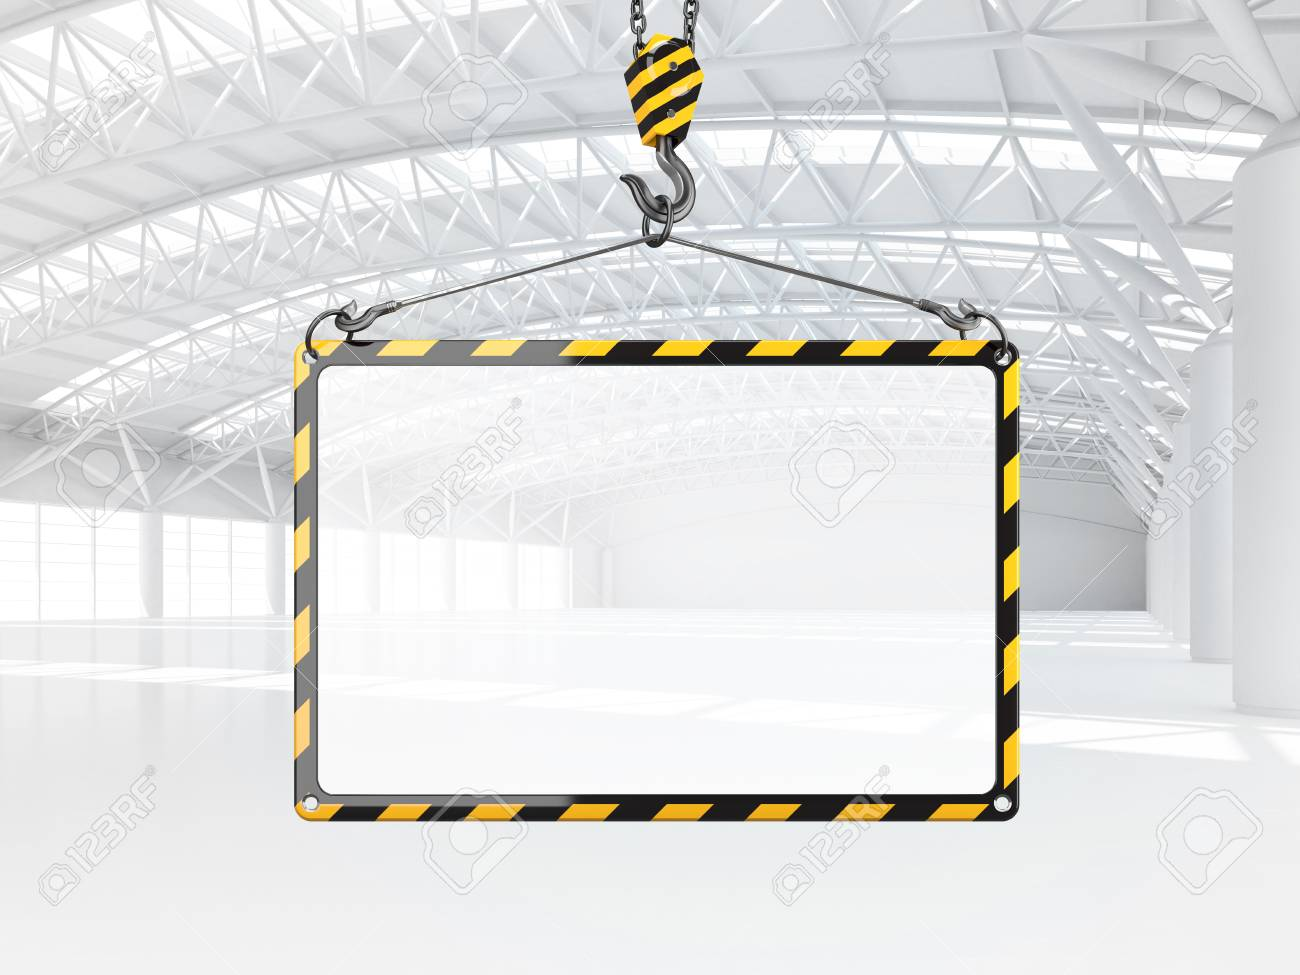 Abstract Empty White Warehouse Interior With Empty Frame Hanging ...